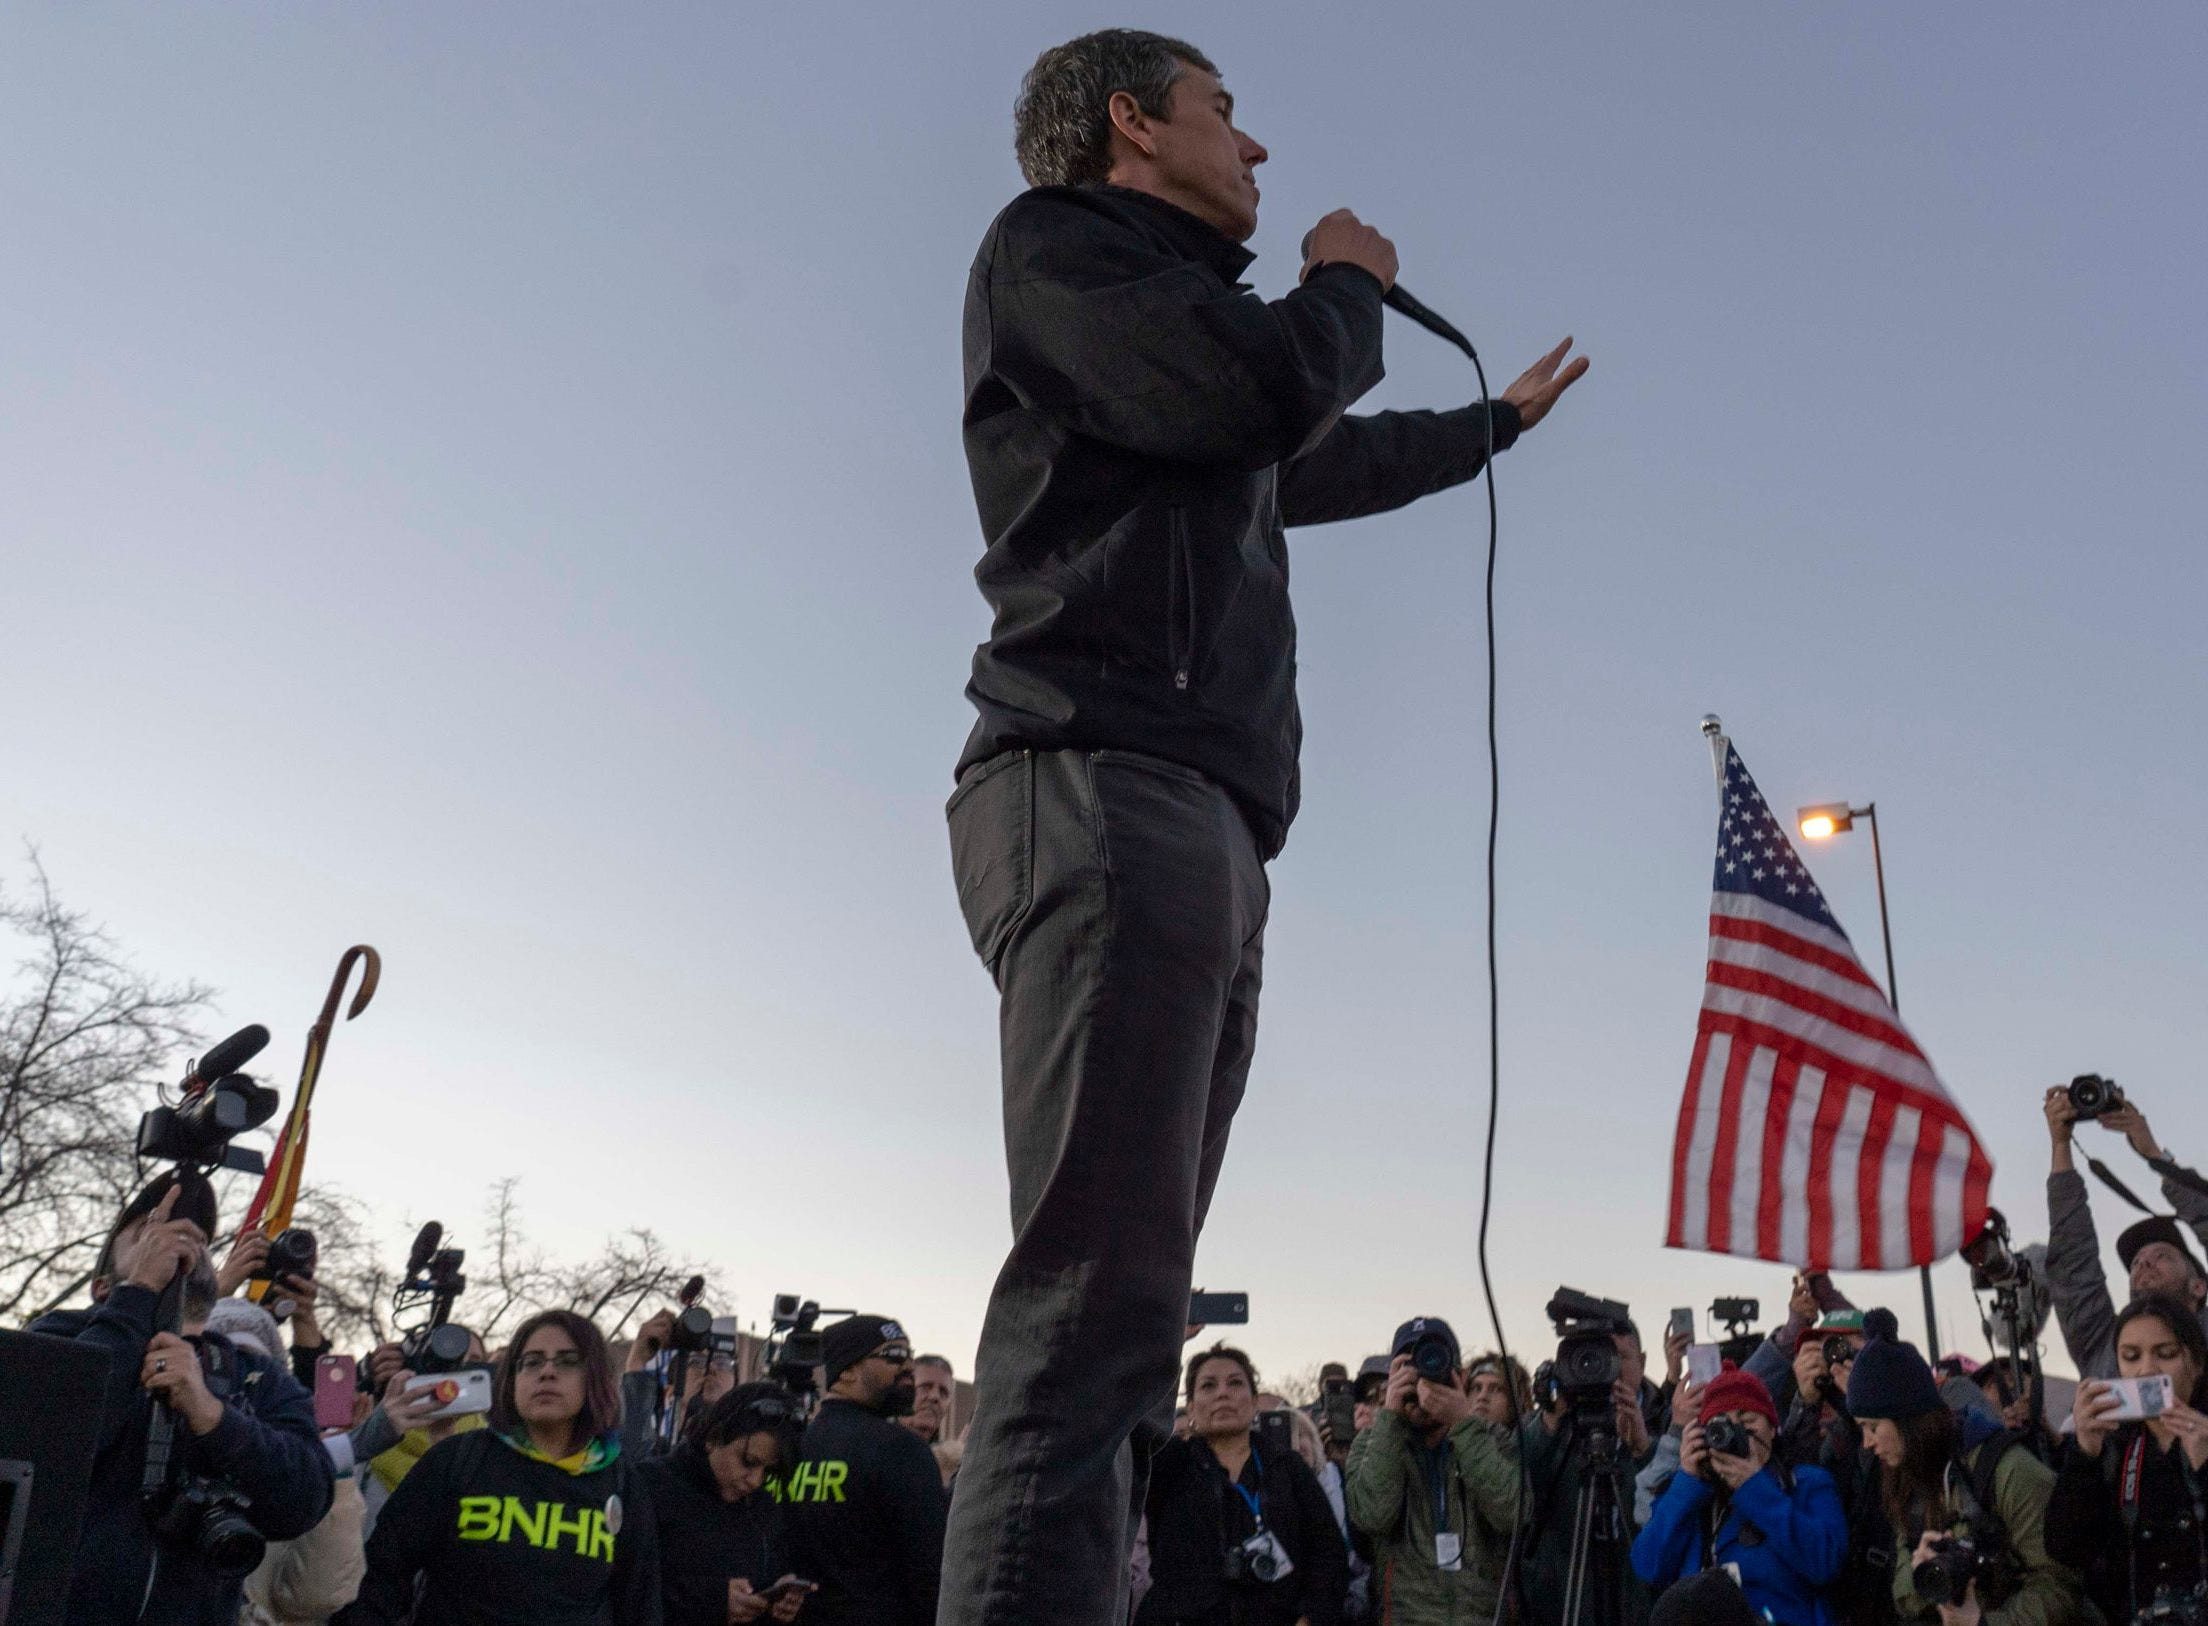 A counter-rally led by former U.S. Senate candidate Beto O'Rourke in El Paso, Texas.